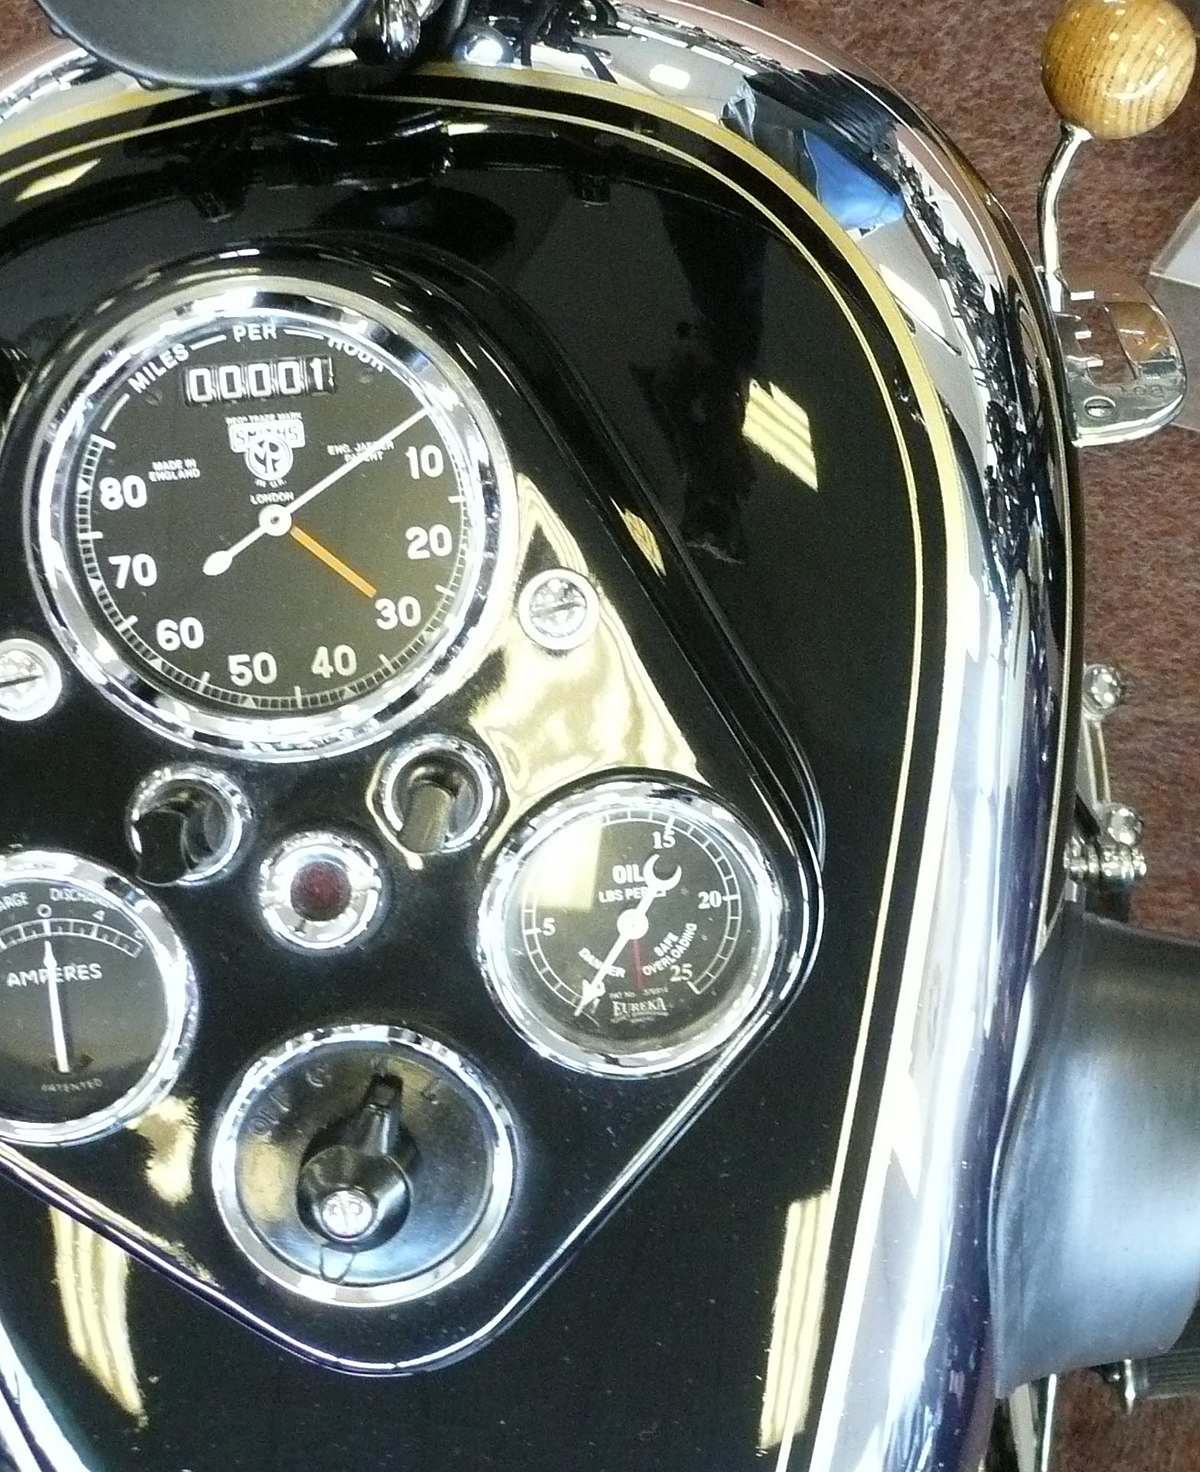 Px Ajs S Riders View on V4 Engine